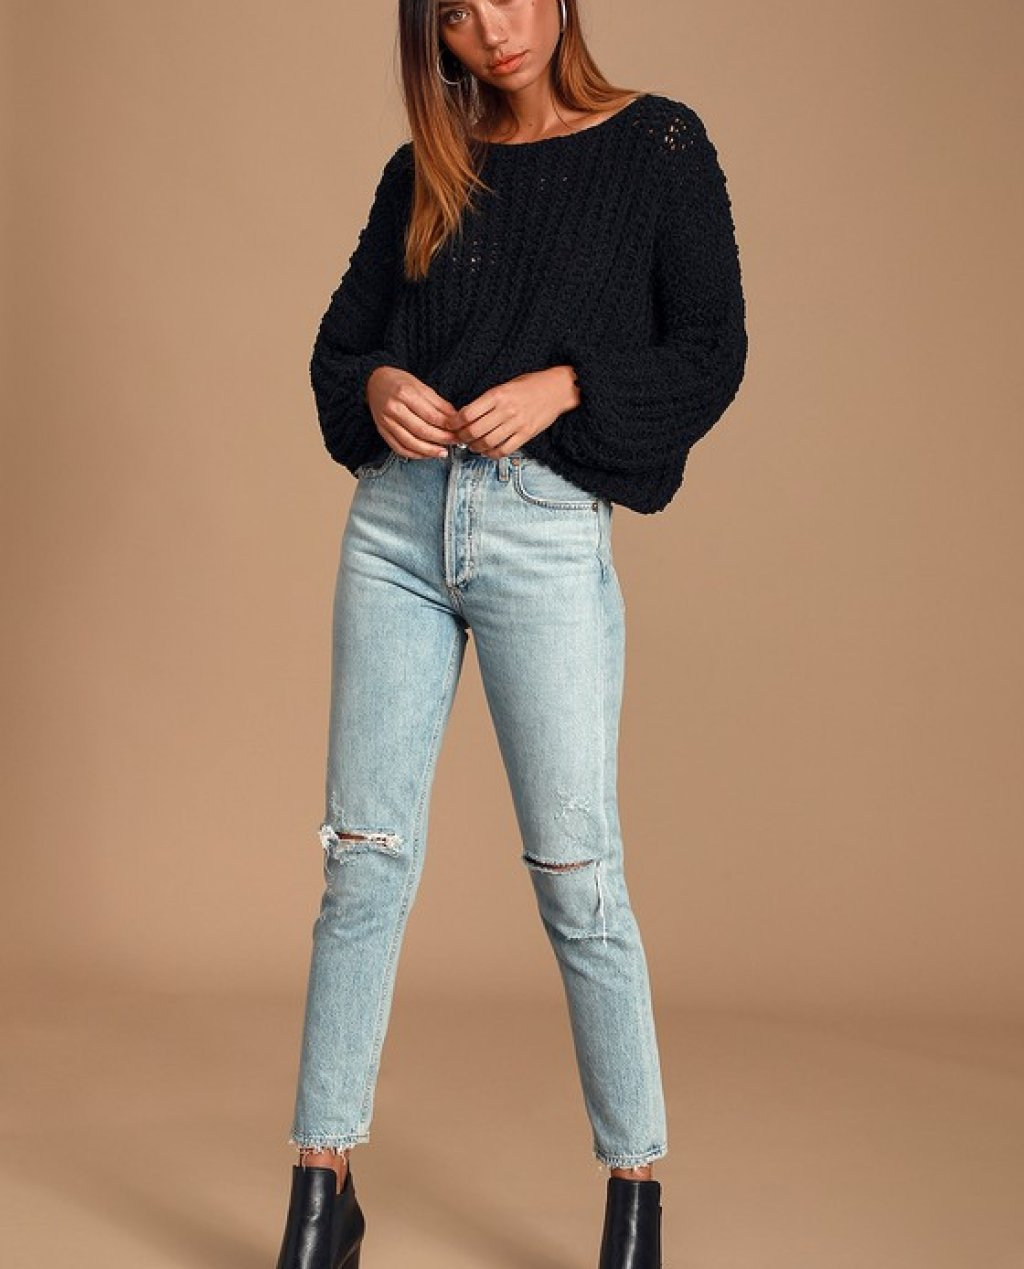 Kyleigh Black Loose Knit Sweater